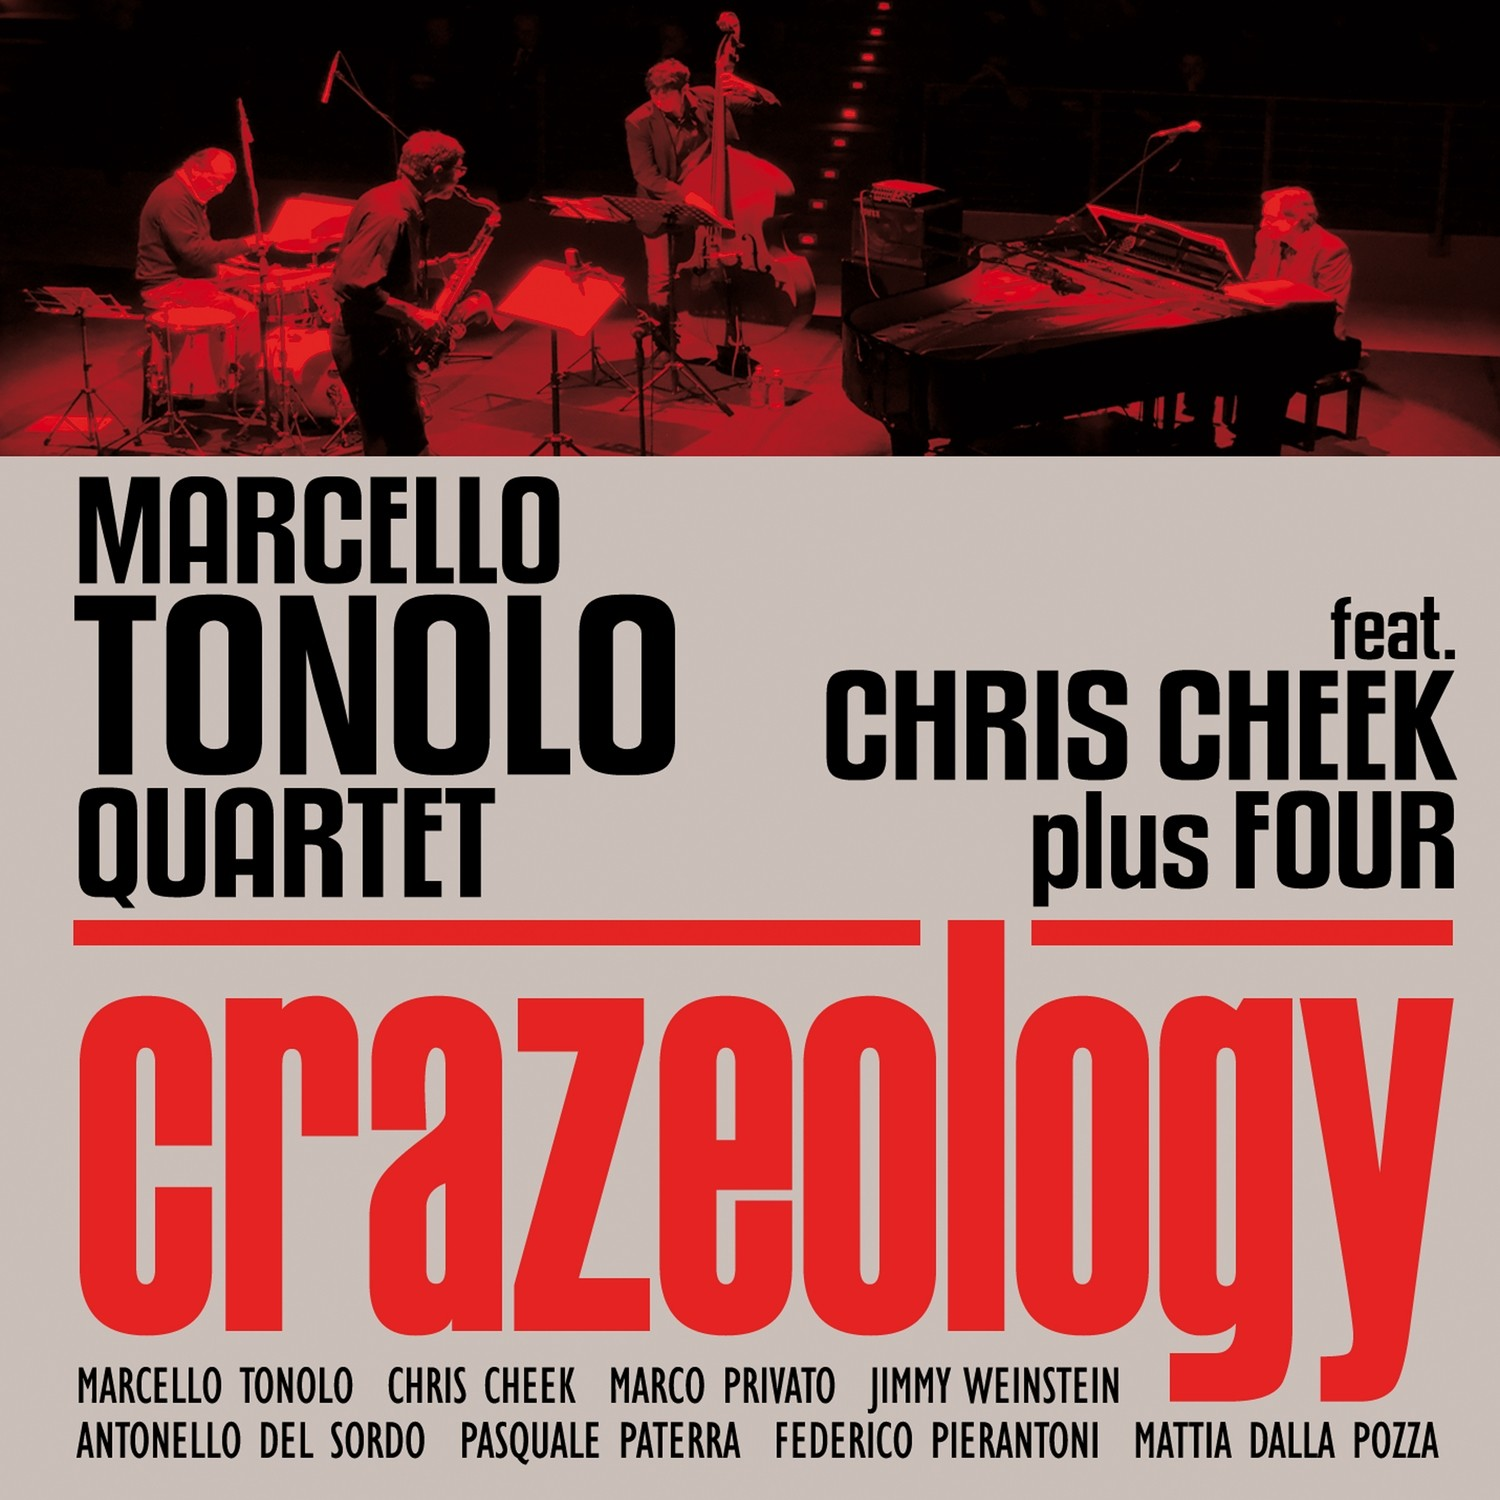 MARCELLO TONOLO QUARTET feat. CHRIS CHEEK plus FOUR   «Crazeology»